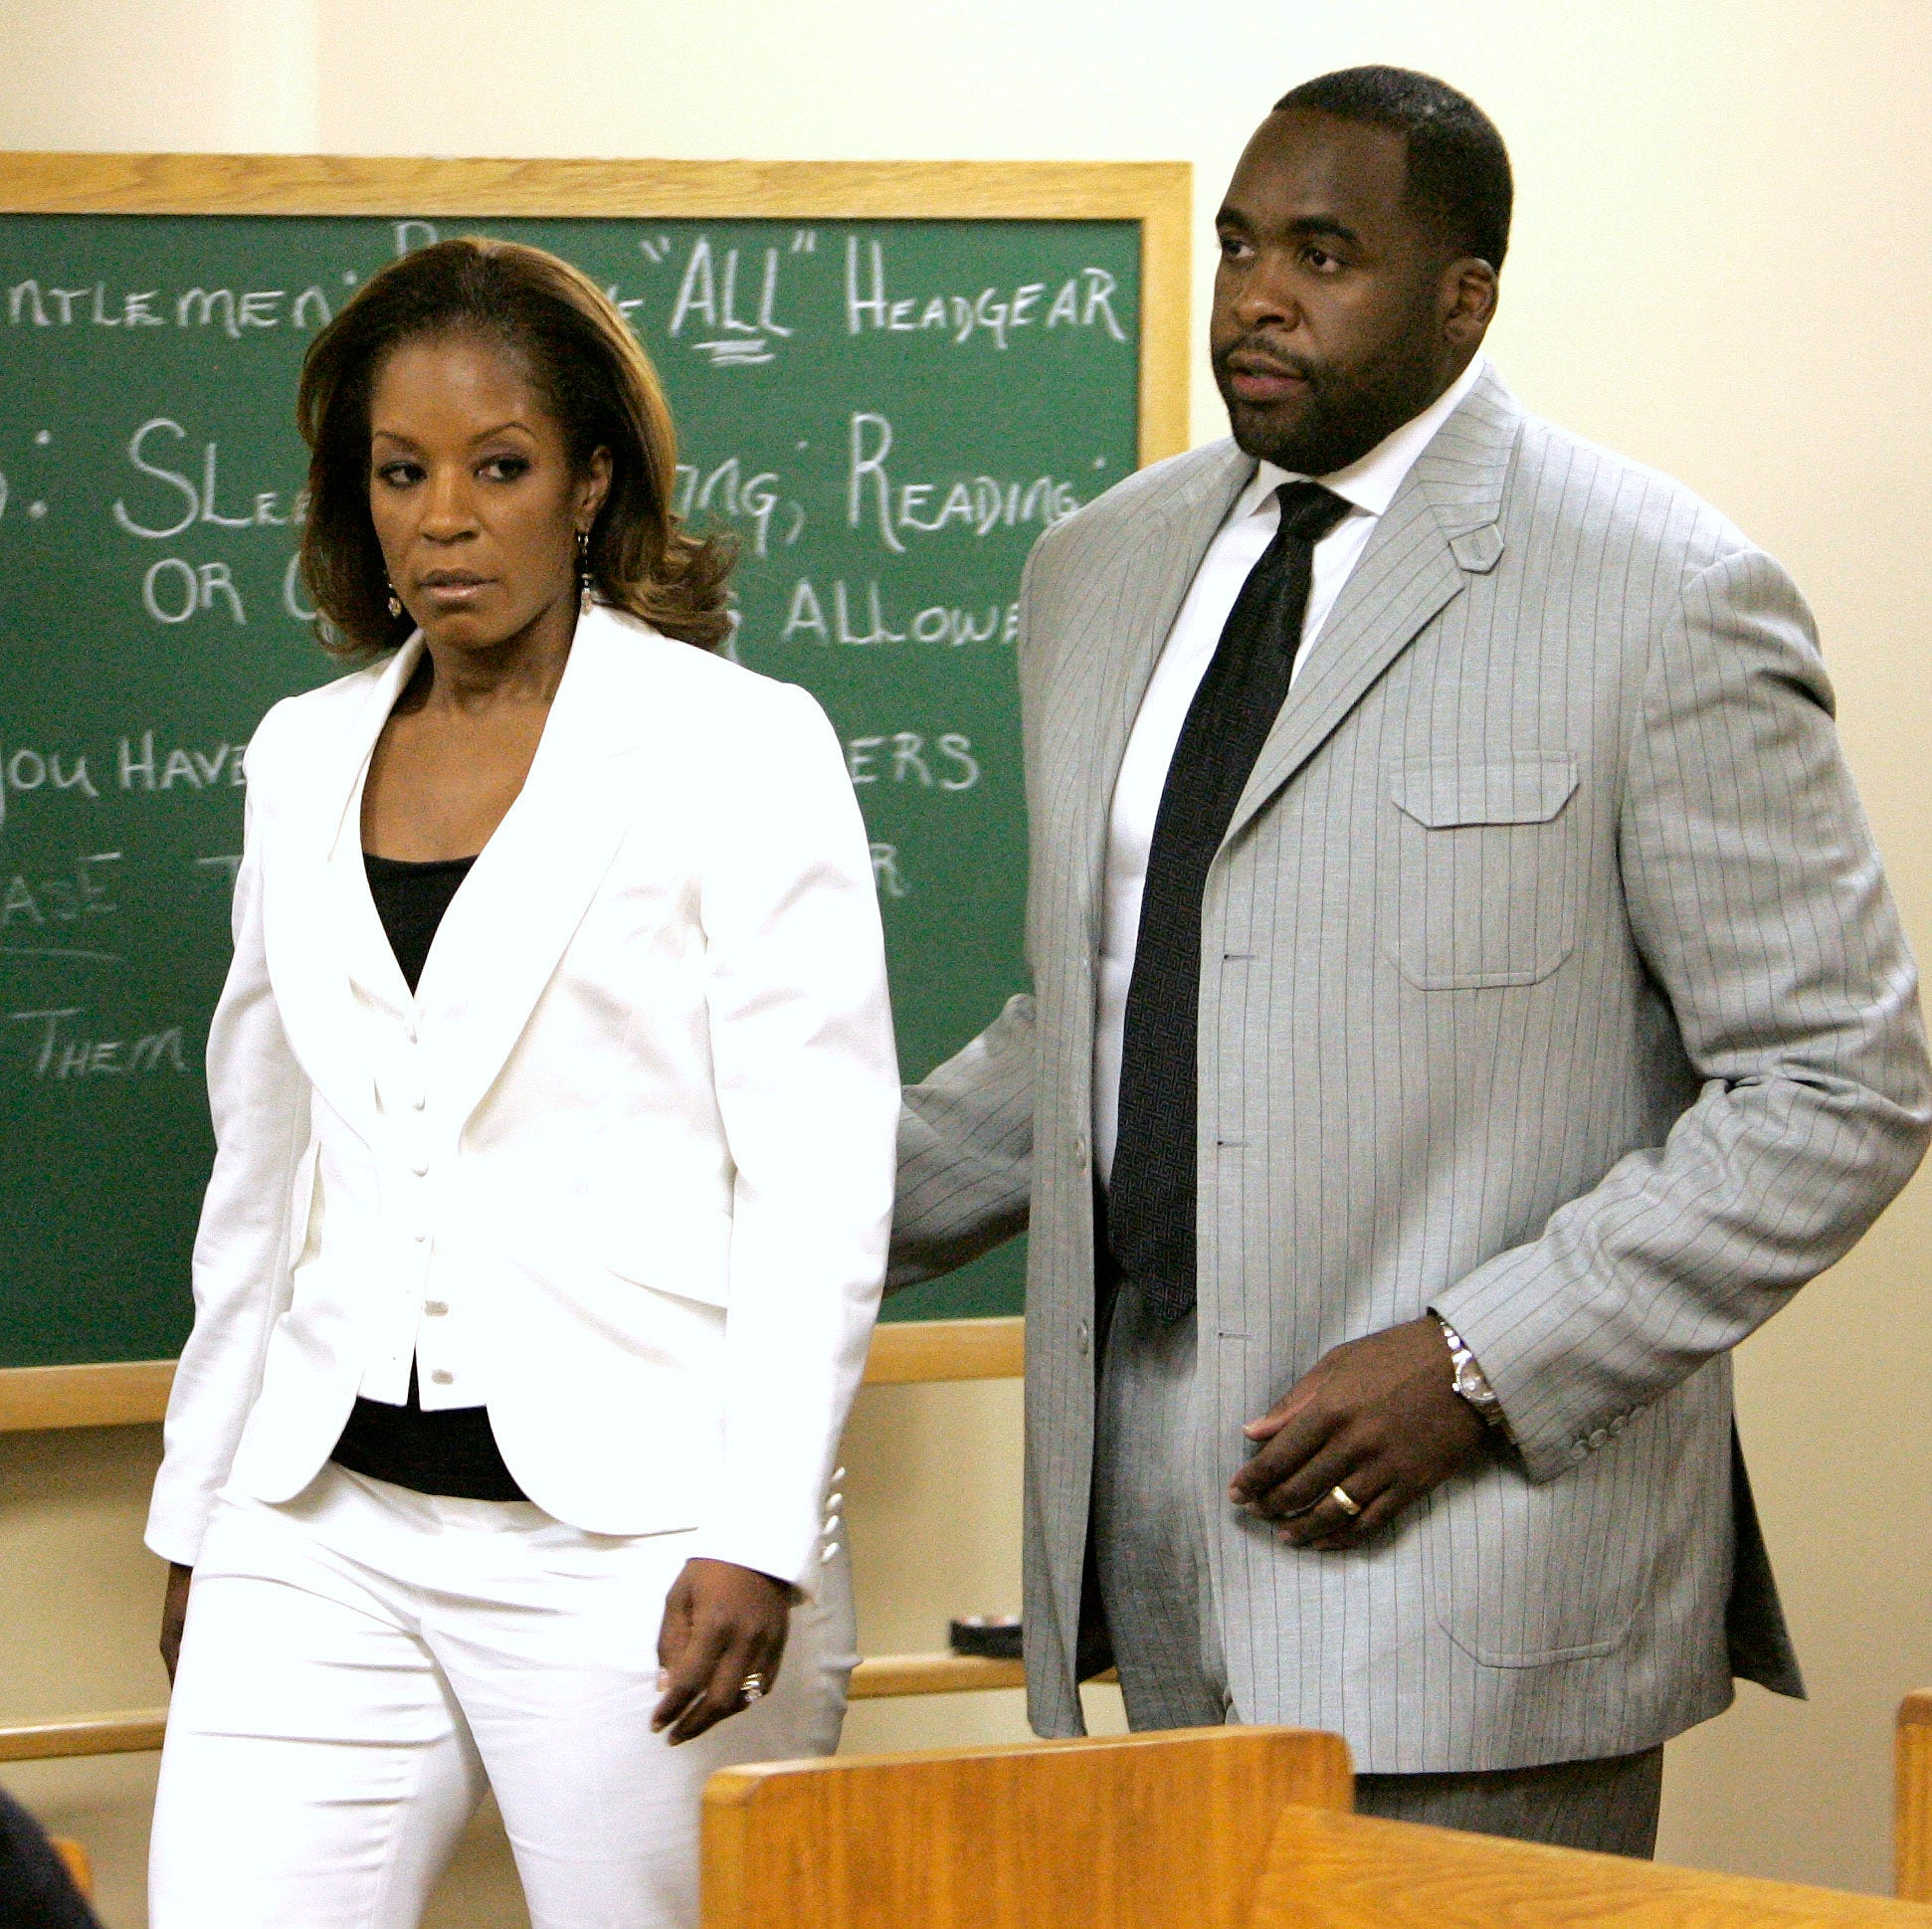 Kwame Kilpatrick: Marriage 'irreparably destroyed'